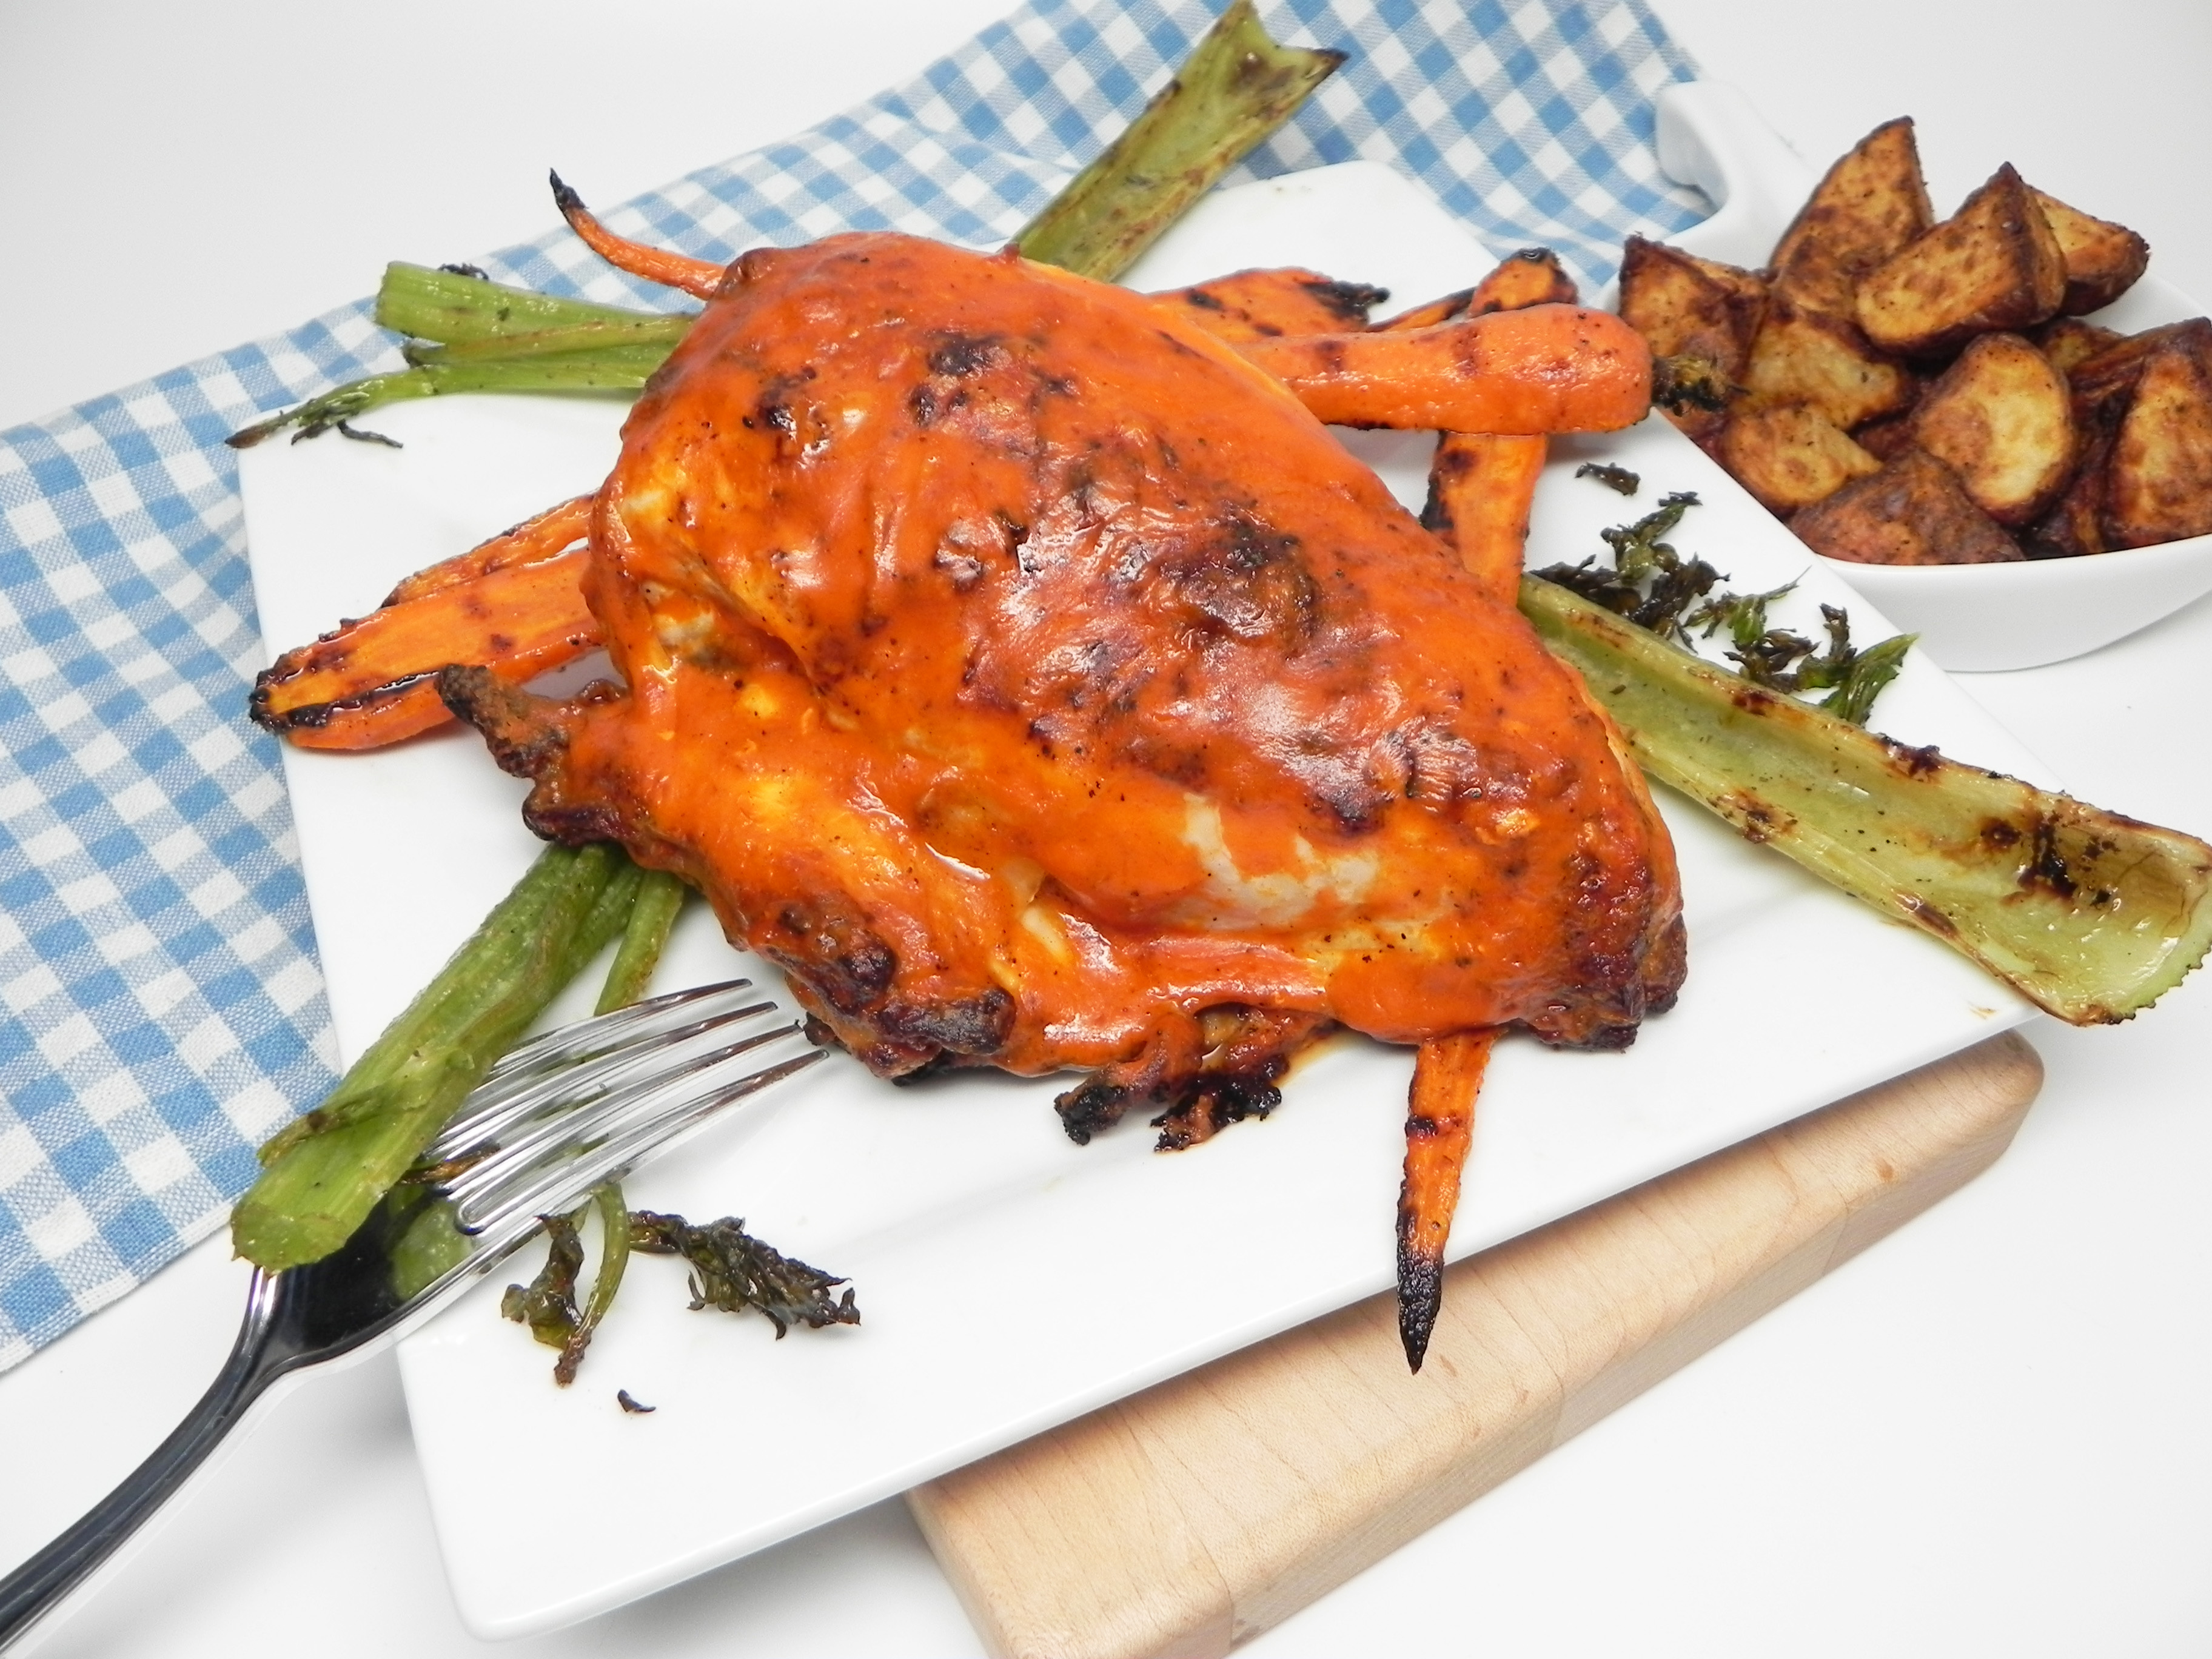 Grilled Buffalo Chicken Breast with Ranch Carrots and Celery